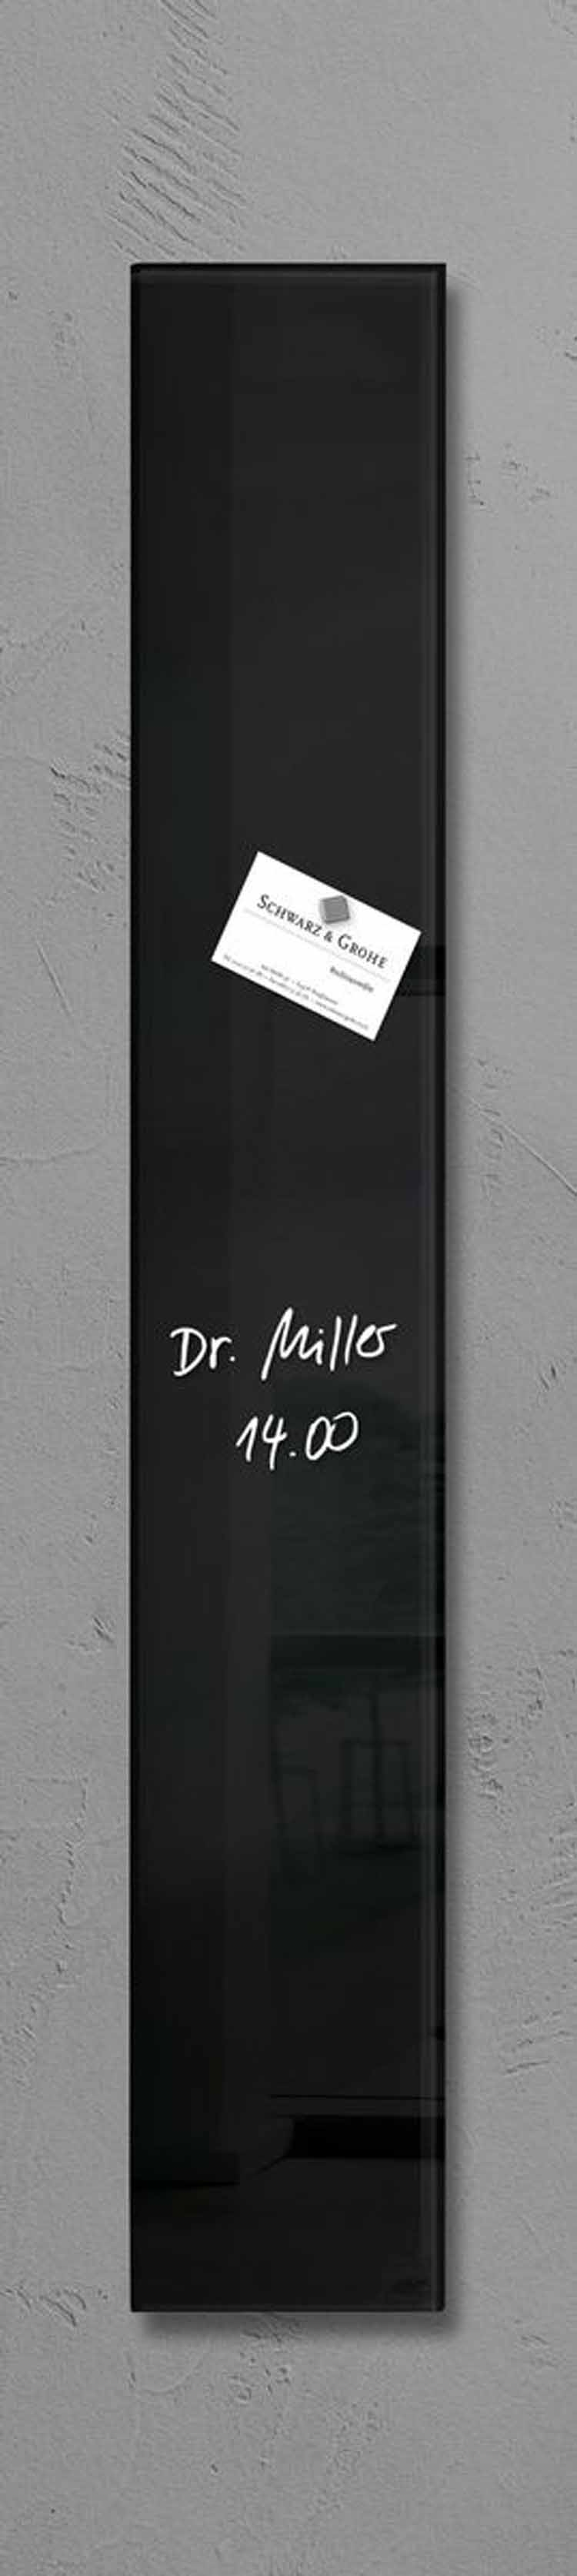 sigel design glas magnetboard 12x78cm magnet magnettafel pinnwand wandboard ebay. Black Bedroom Furniture Sets. Home Design Ideas